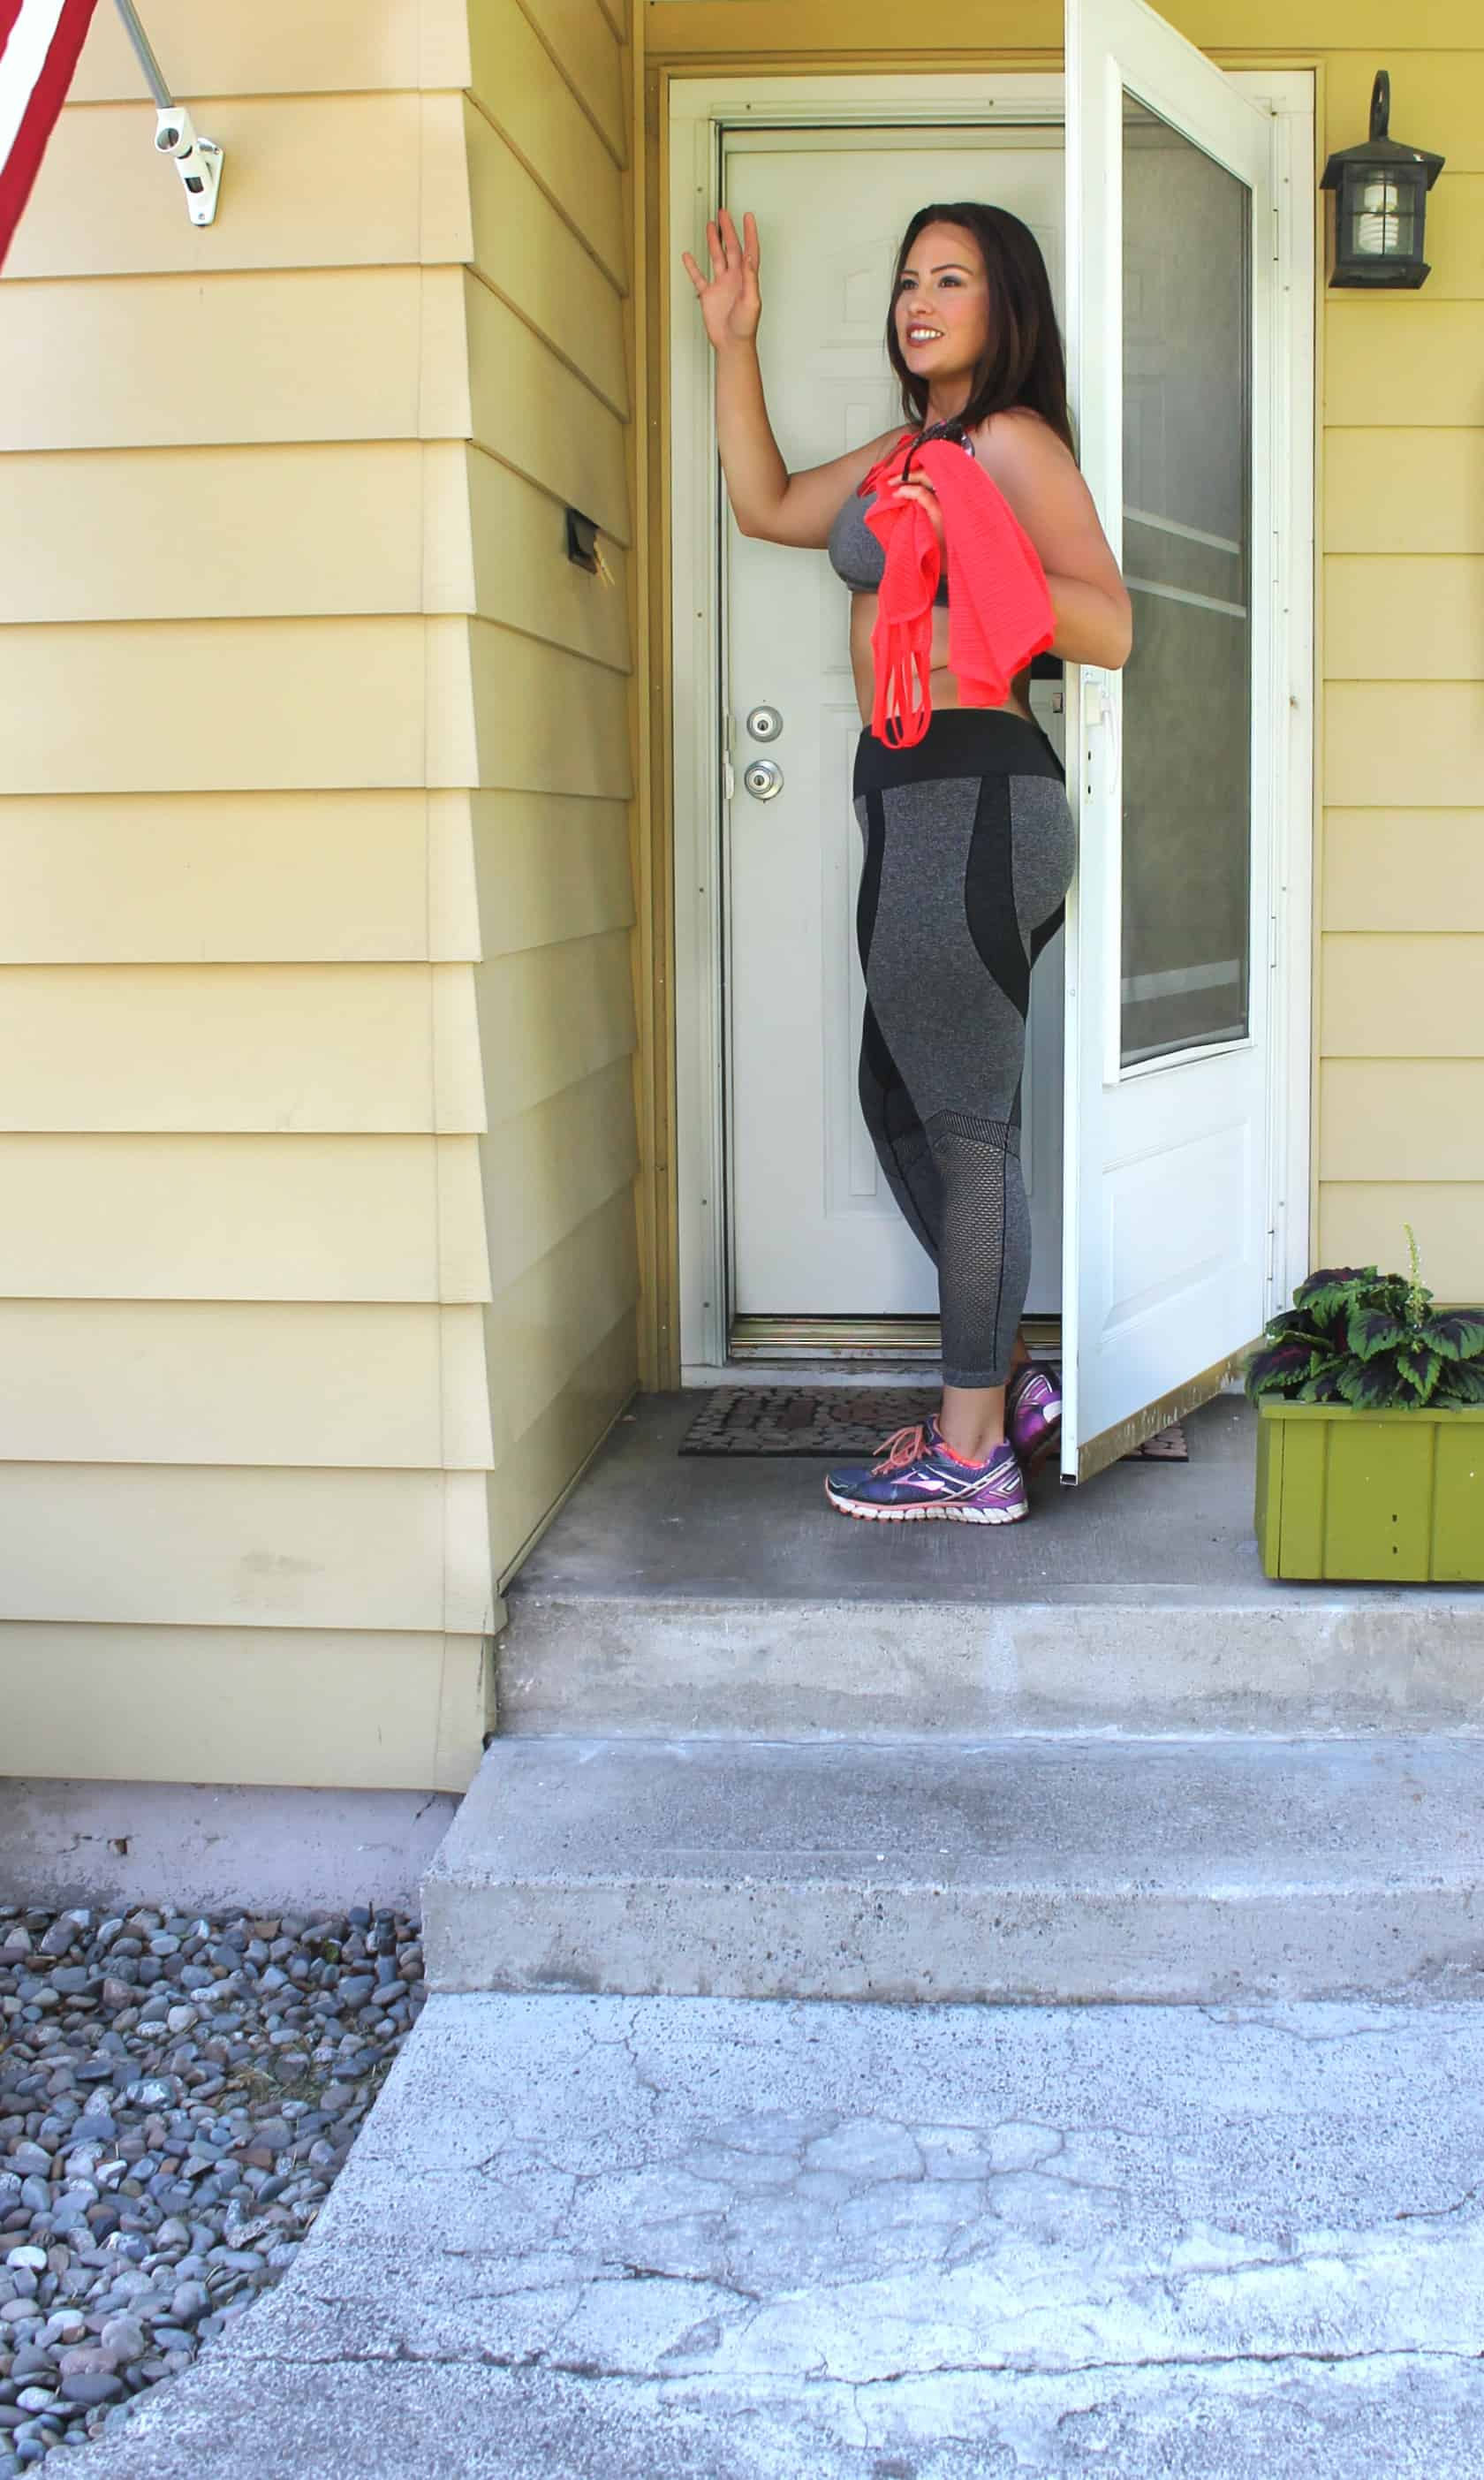 ellie activewear, women's activewear